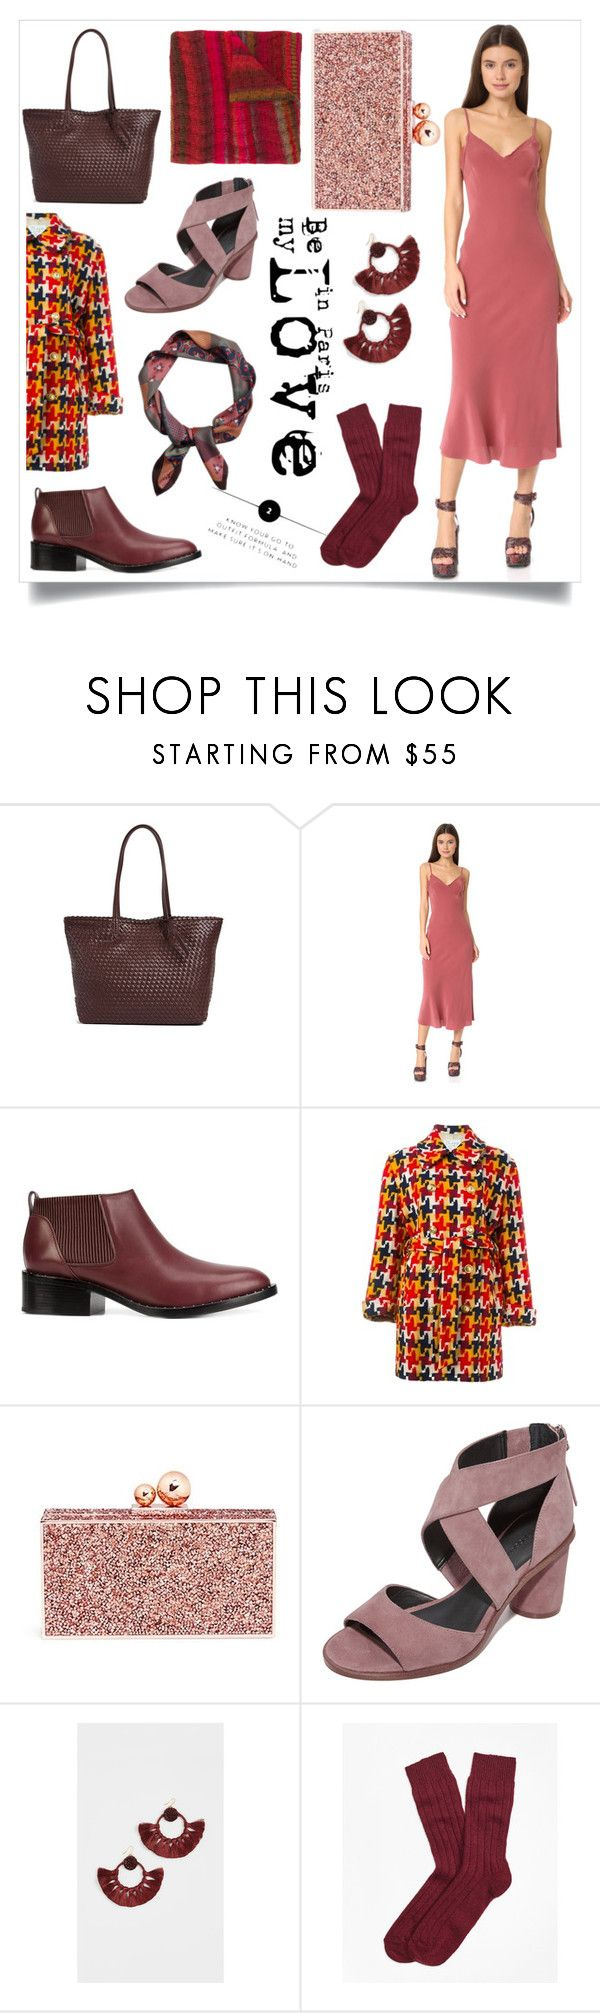 """""""Be unique"""" by emmamegan-5678 ❤ liked on Polyvore featuring Naghedi, 3.1 Phillip Lim, Moschino, Sophia Webster, Rebecca Minkoff, Deepa Gurnani, Brooks Brothers and modern"""